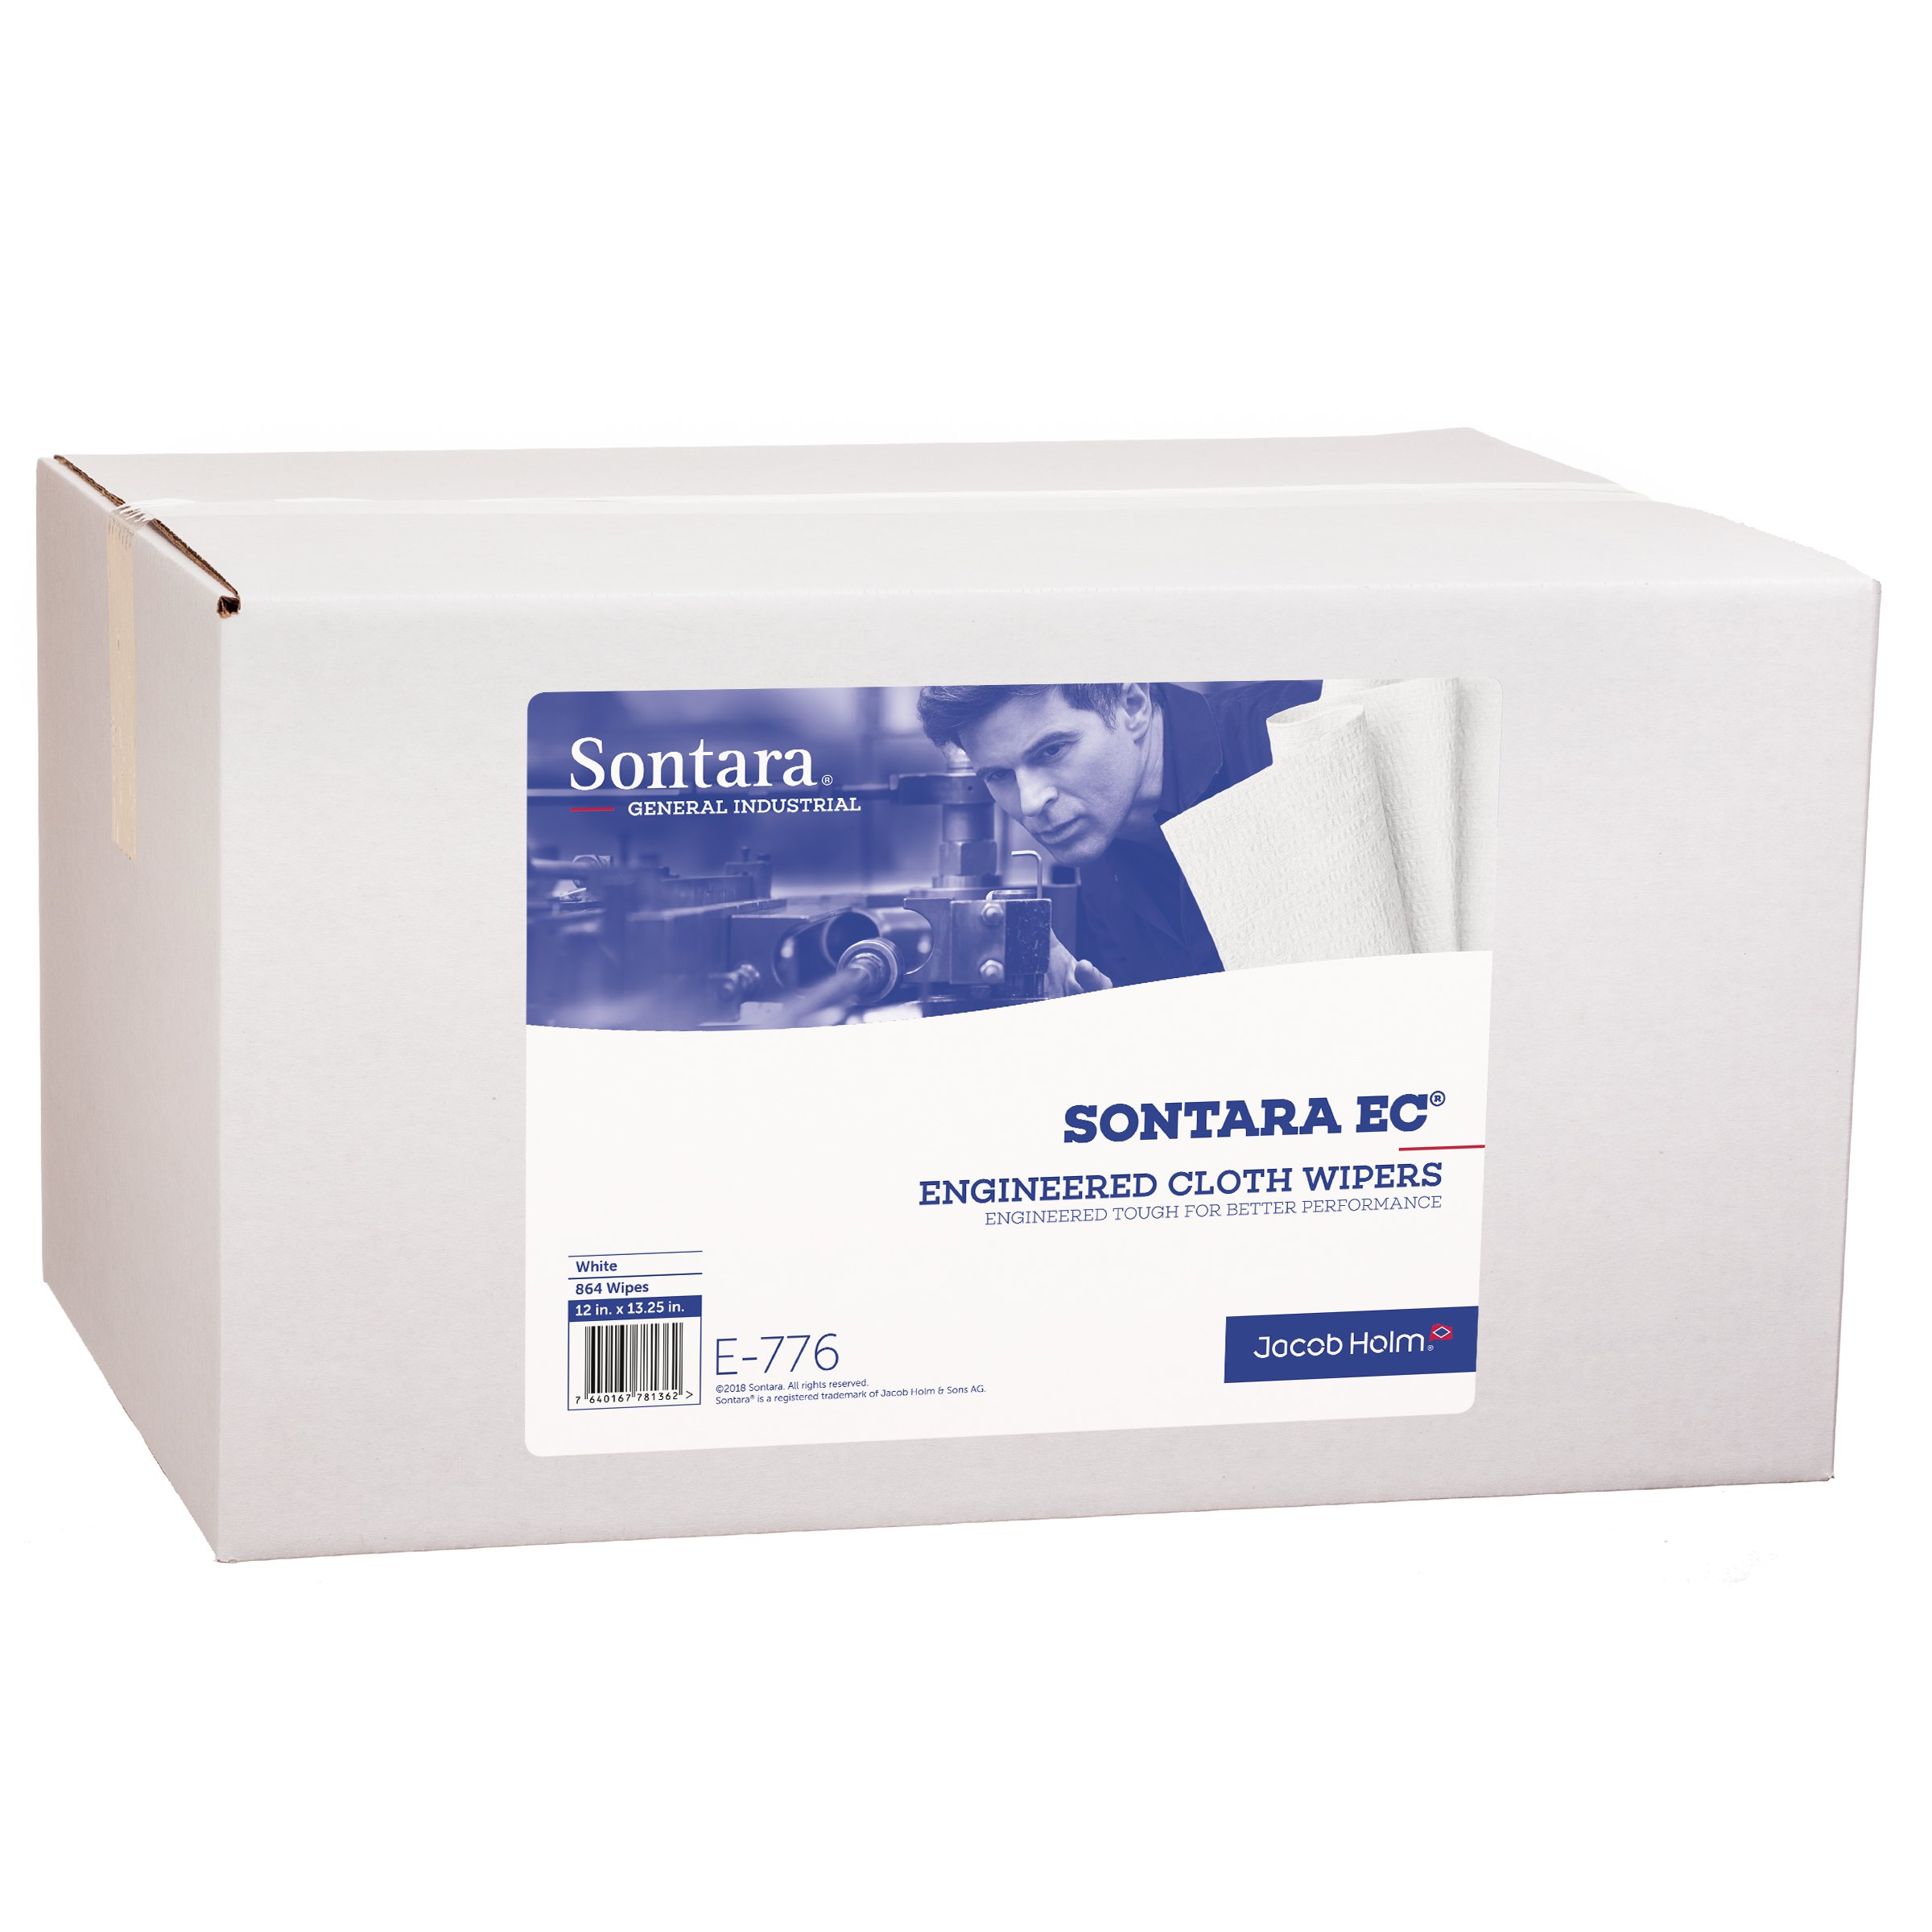 Sontara Engineered Cloth Wipers, E776, White, 12'' x 13.25'', (Total of 864 Wipes), (Case of 18 Packs, 48 Wipes Per Pack)